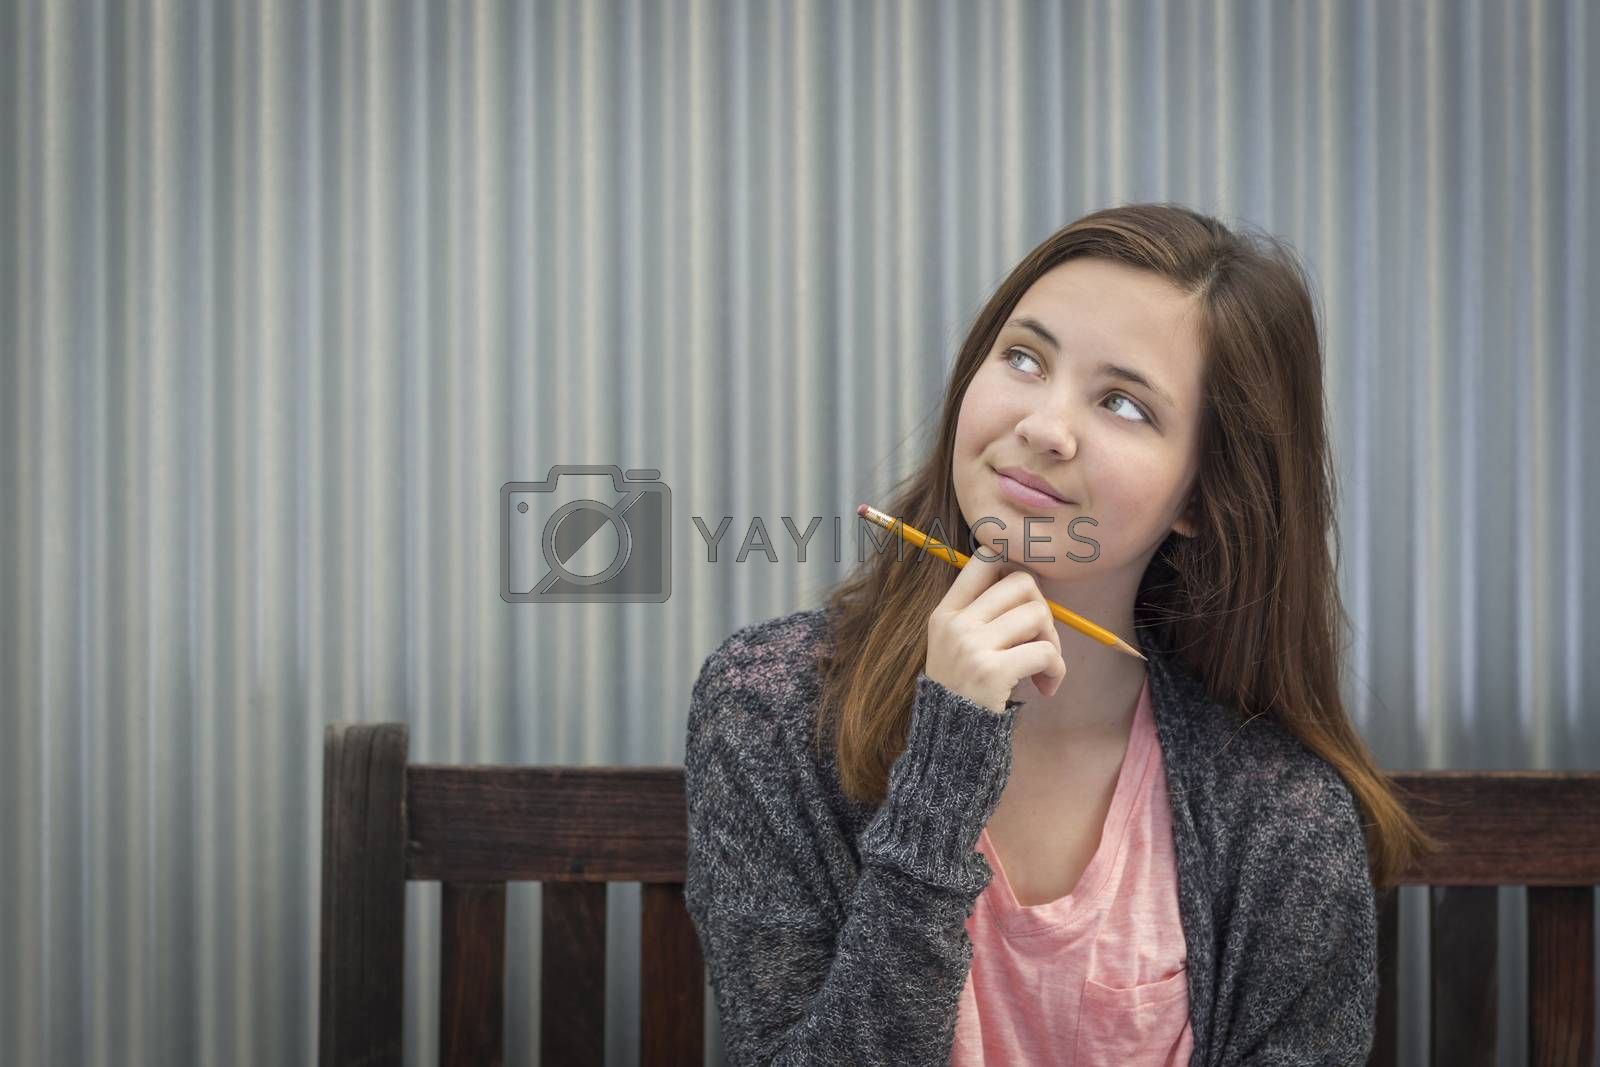 Royalty free image of Young Daydreaming Female Student With Pencil Looking to the Side by Feverpitched